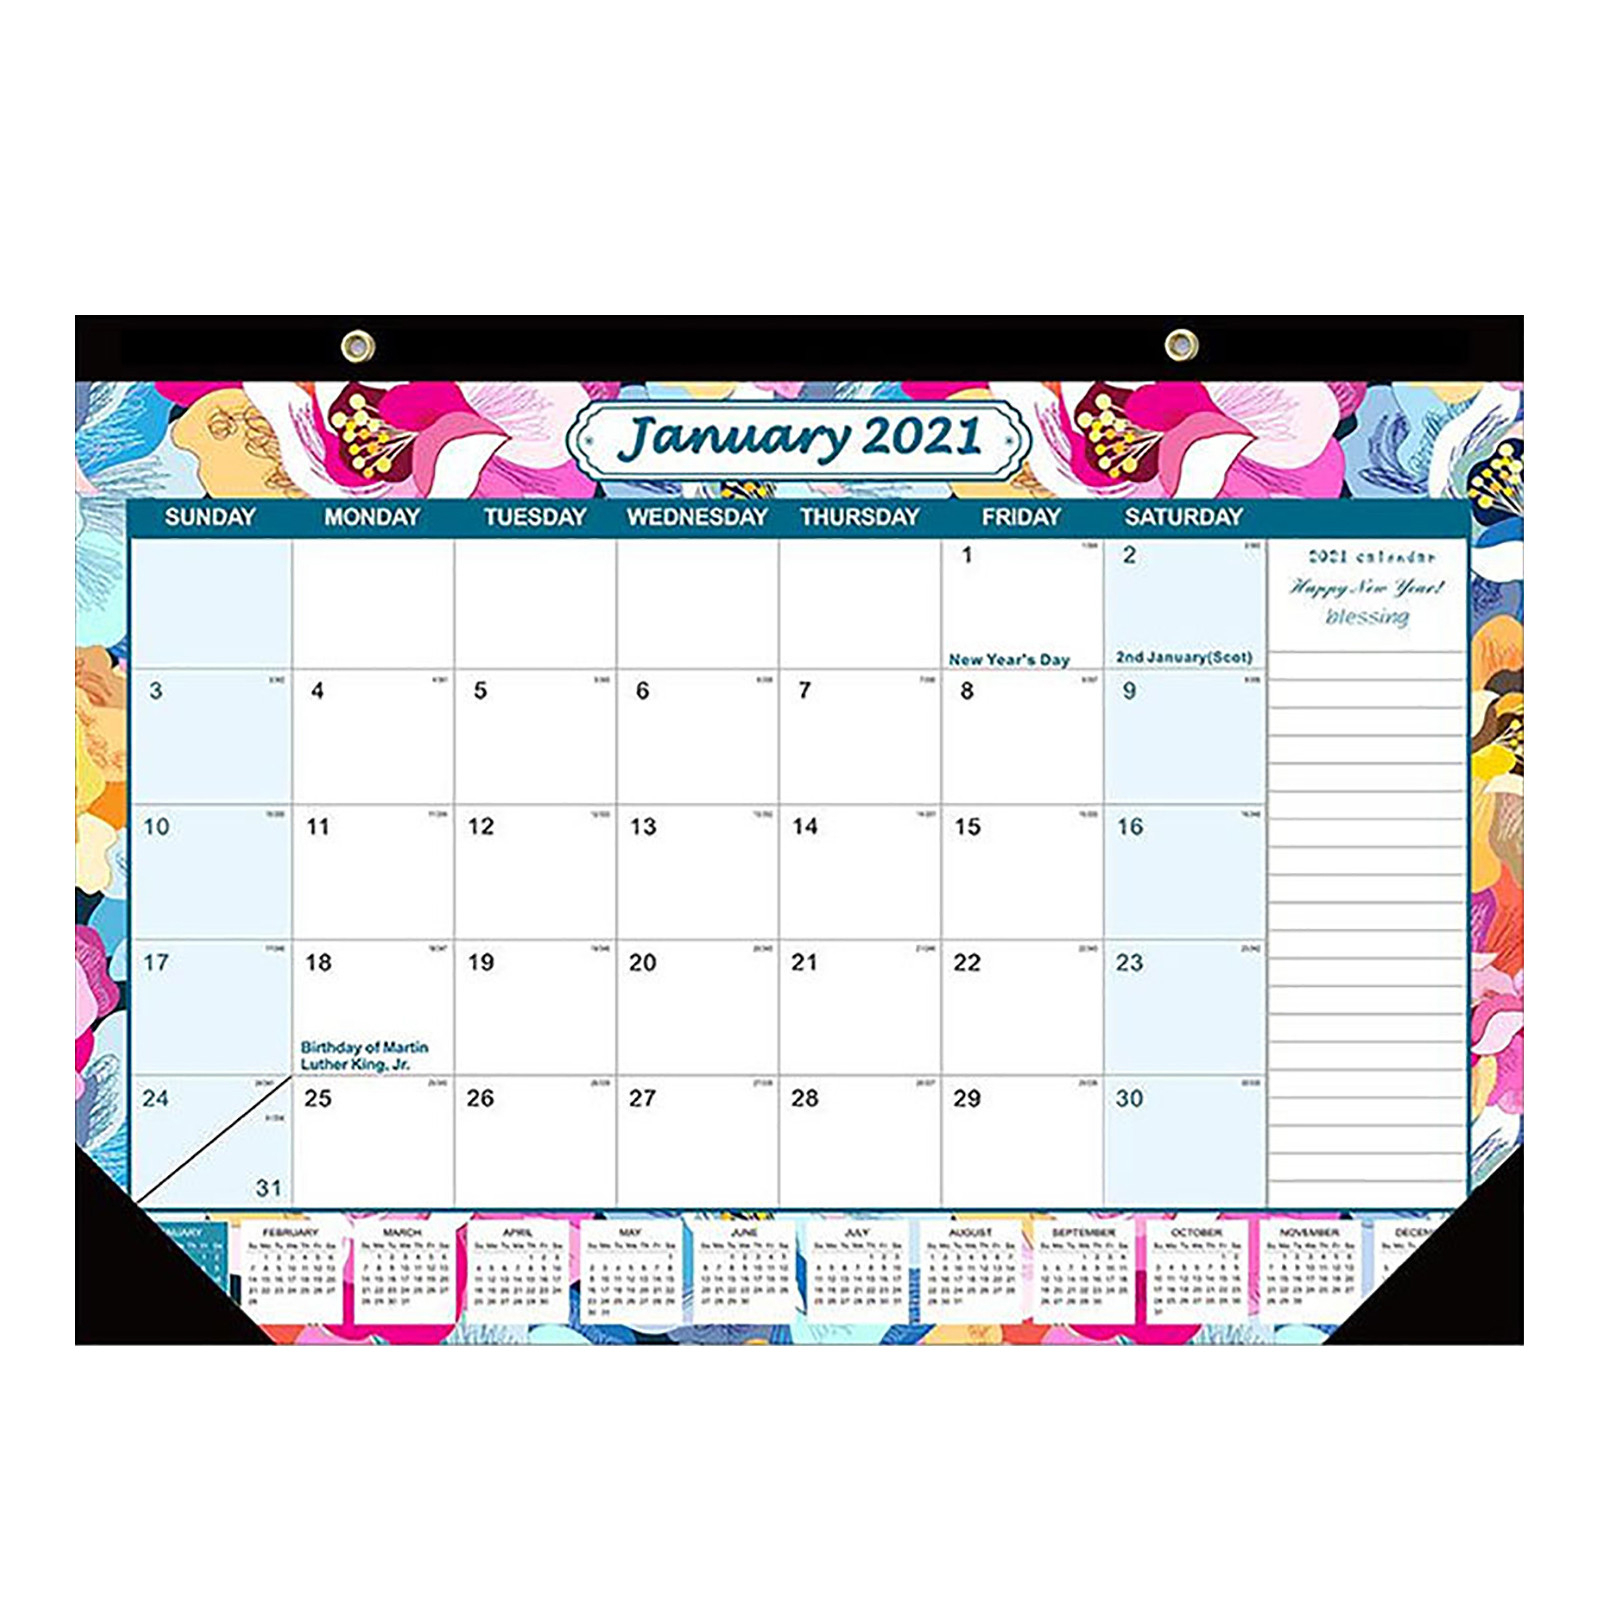 Donald 2021 Desk Calendar With Notes And Julian Date Jan 2021 Thick Paper  With Colorful - Walmart